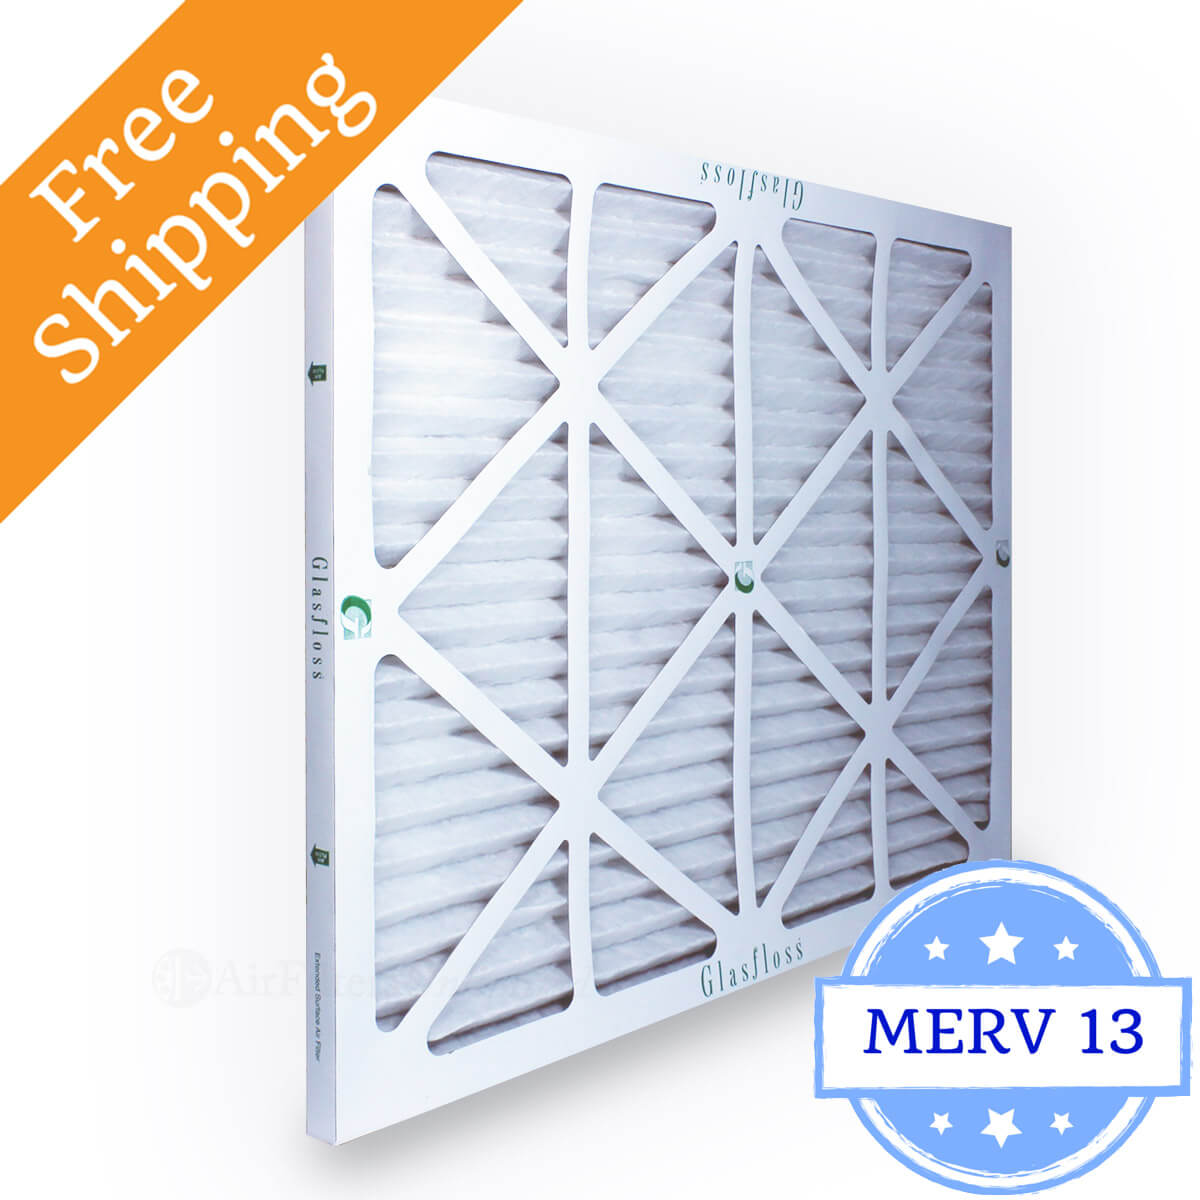 Glasfloss 16x25x1 Air Filter MR-13 Series